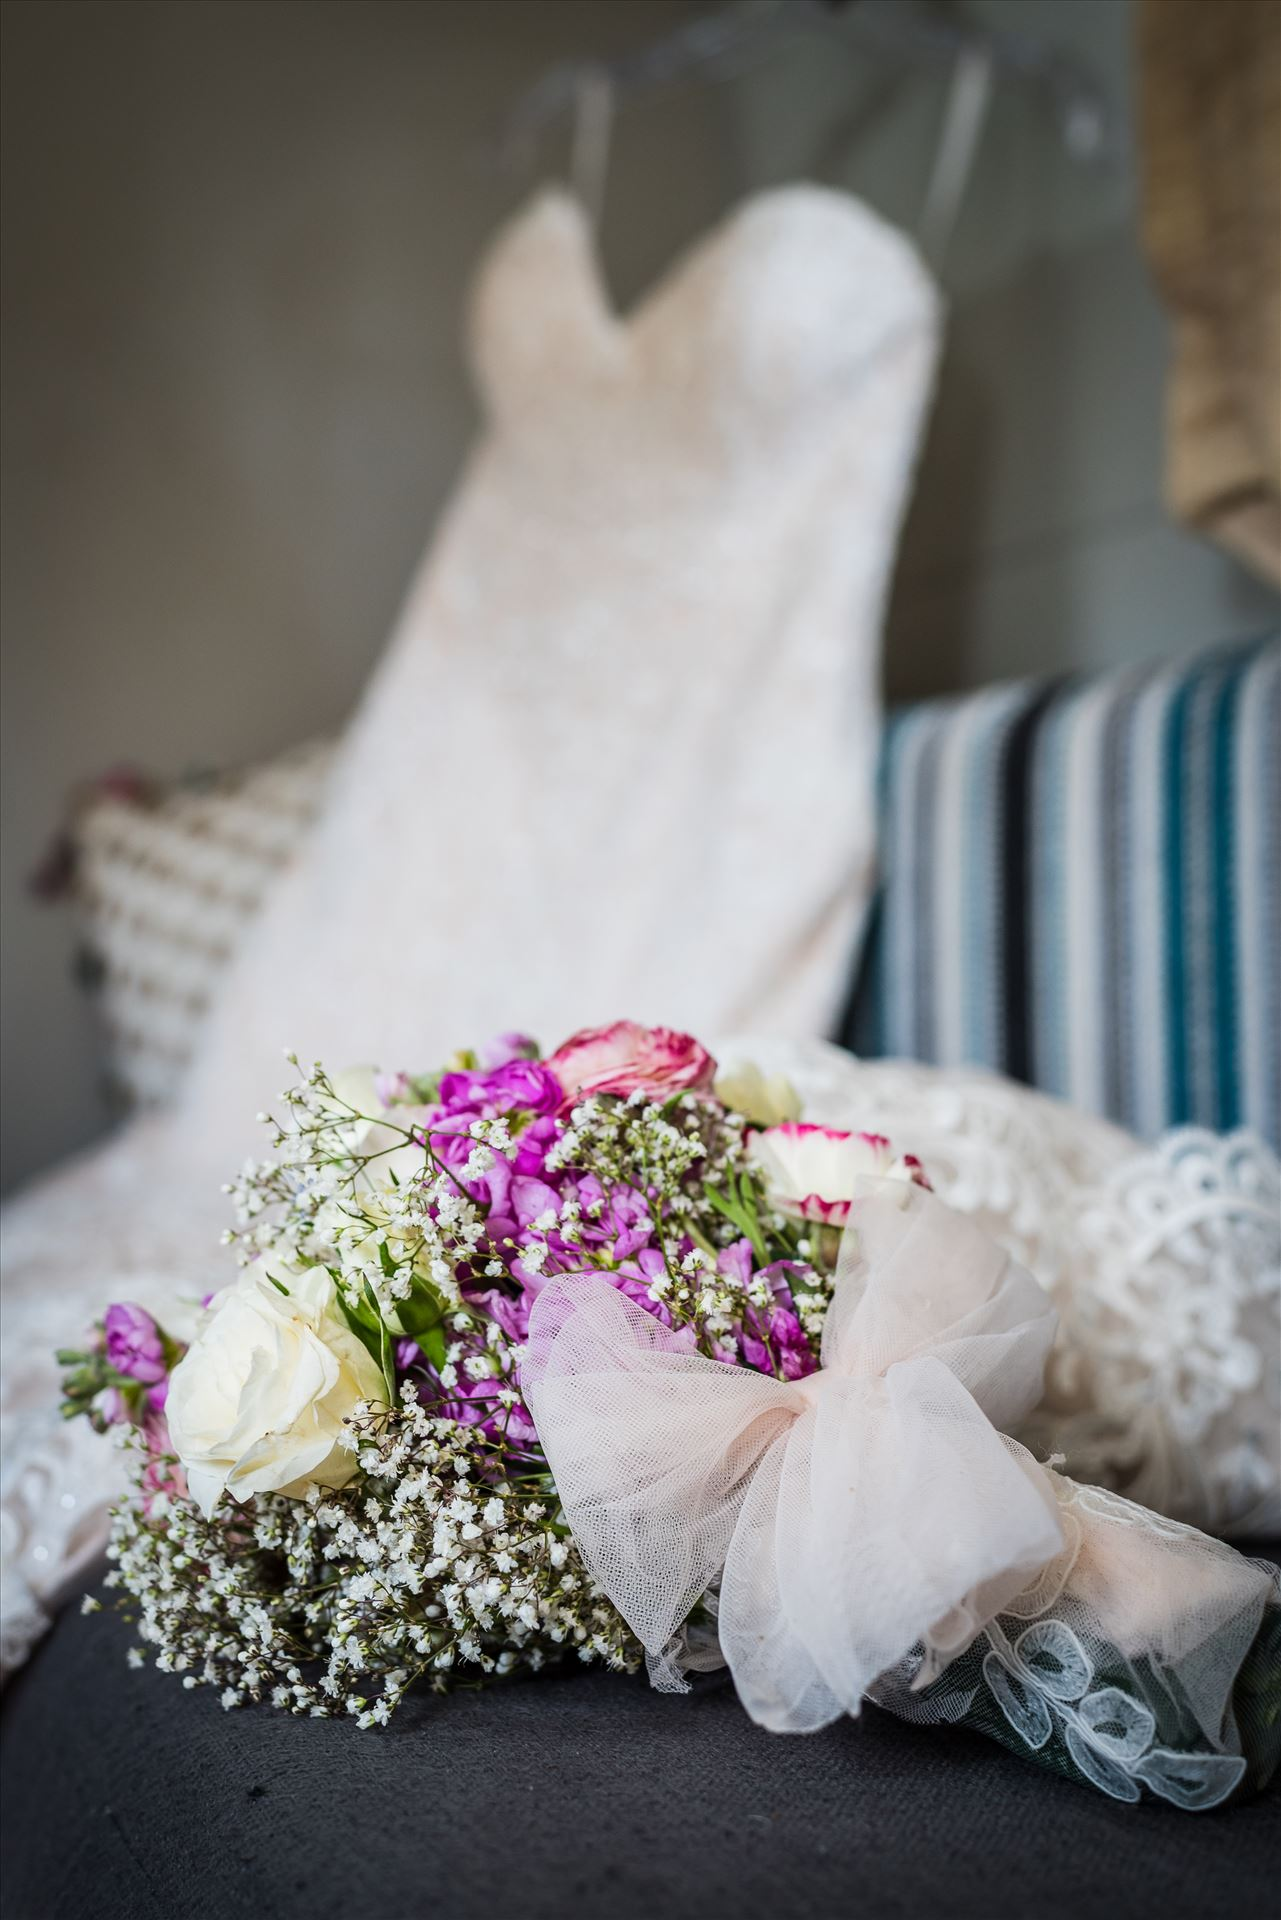 Ana and Juan 10 - Wedding photography at the Kimpton Goodland Hotel in Santa Barbara California by Mirror's Edge Photography.  Wedding Flowers and dress in Airstream by Sarah Williams